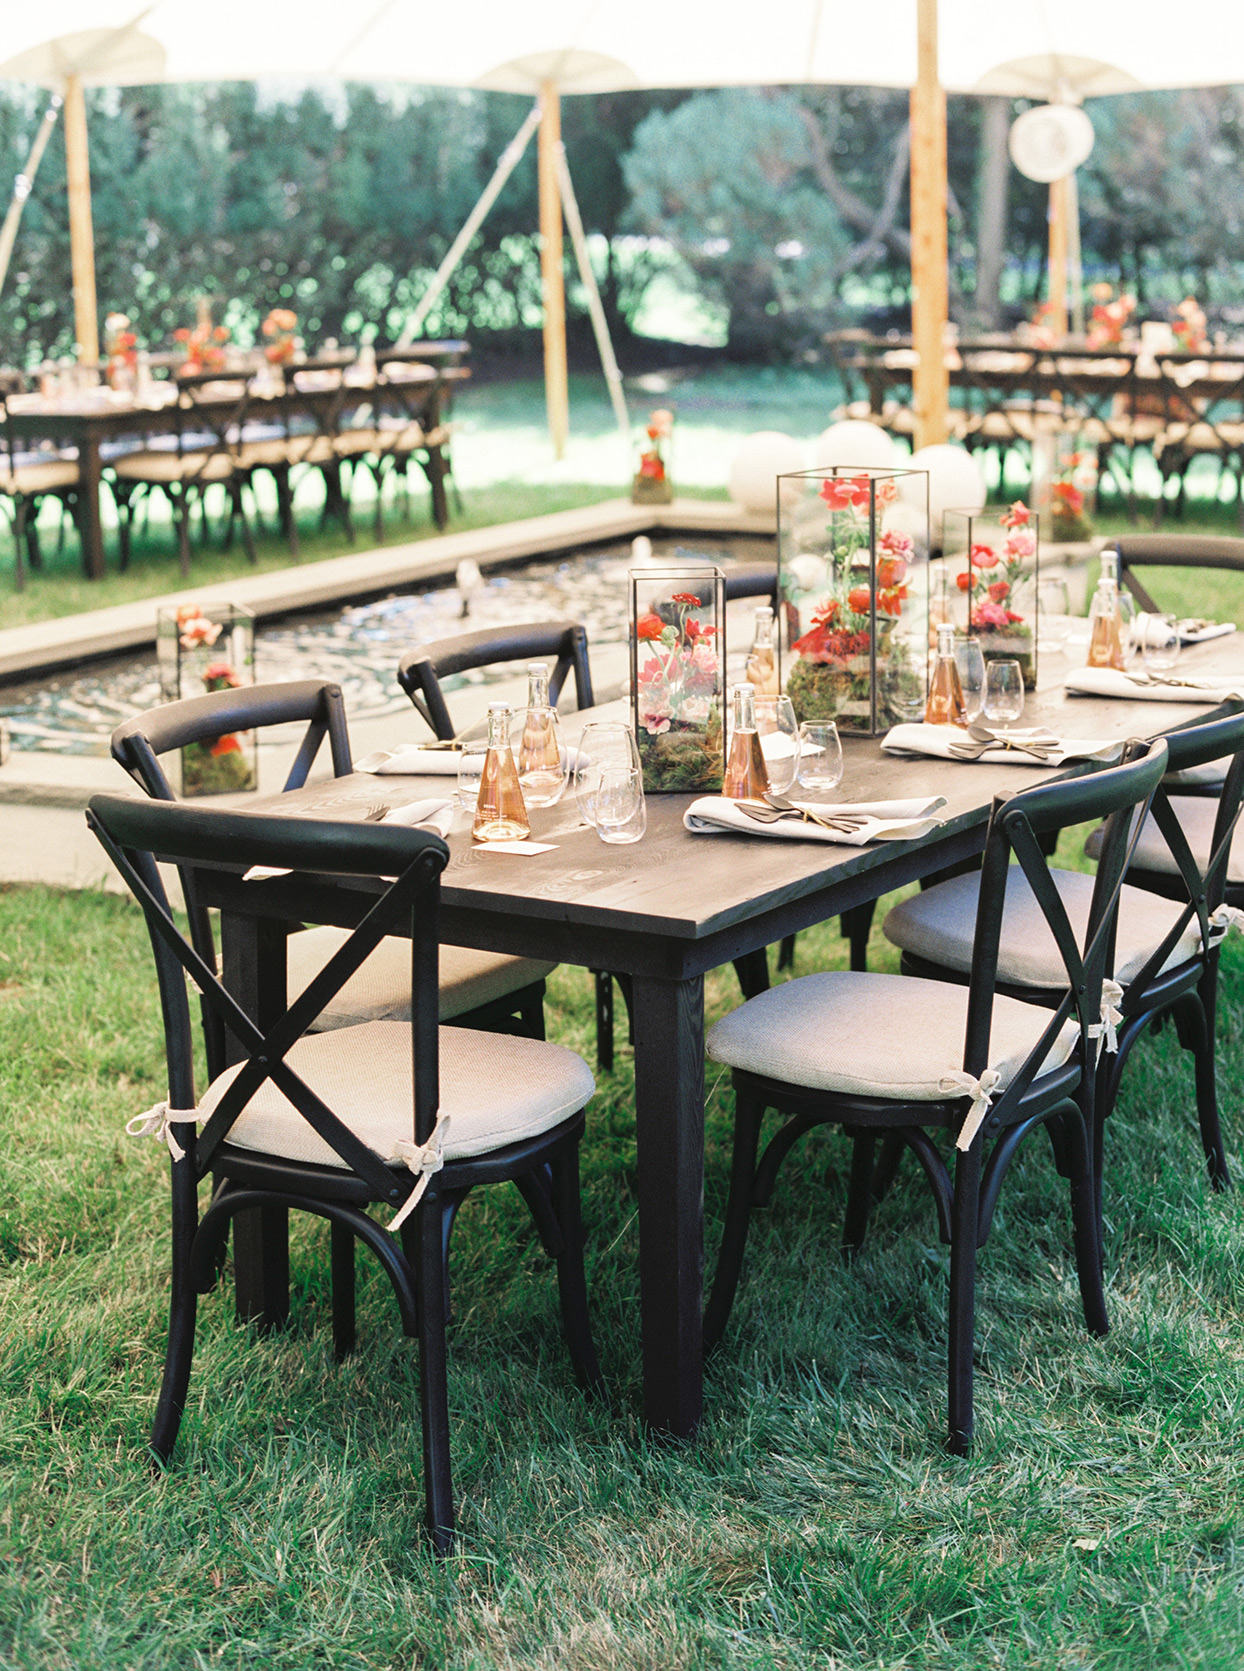 black tables outdoors under white bridal shower tent